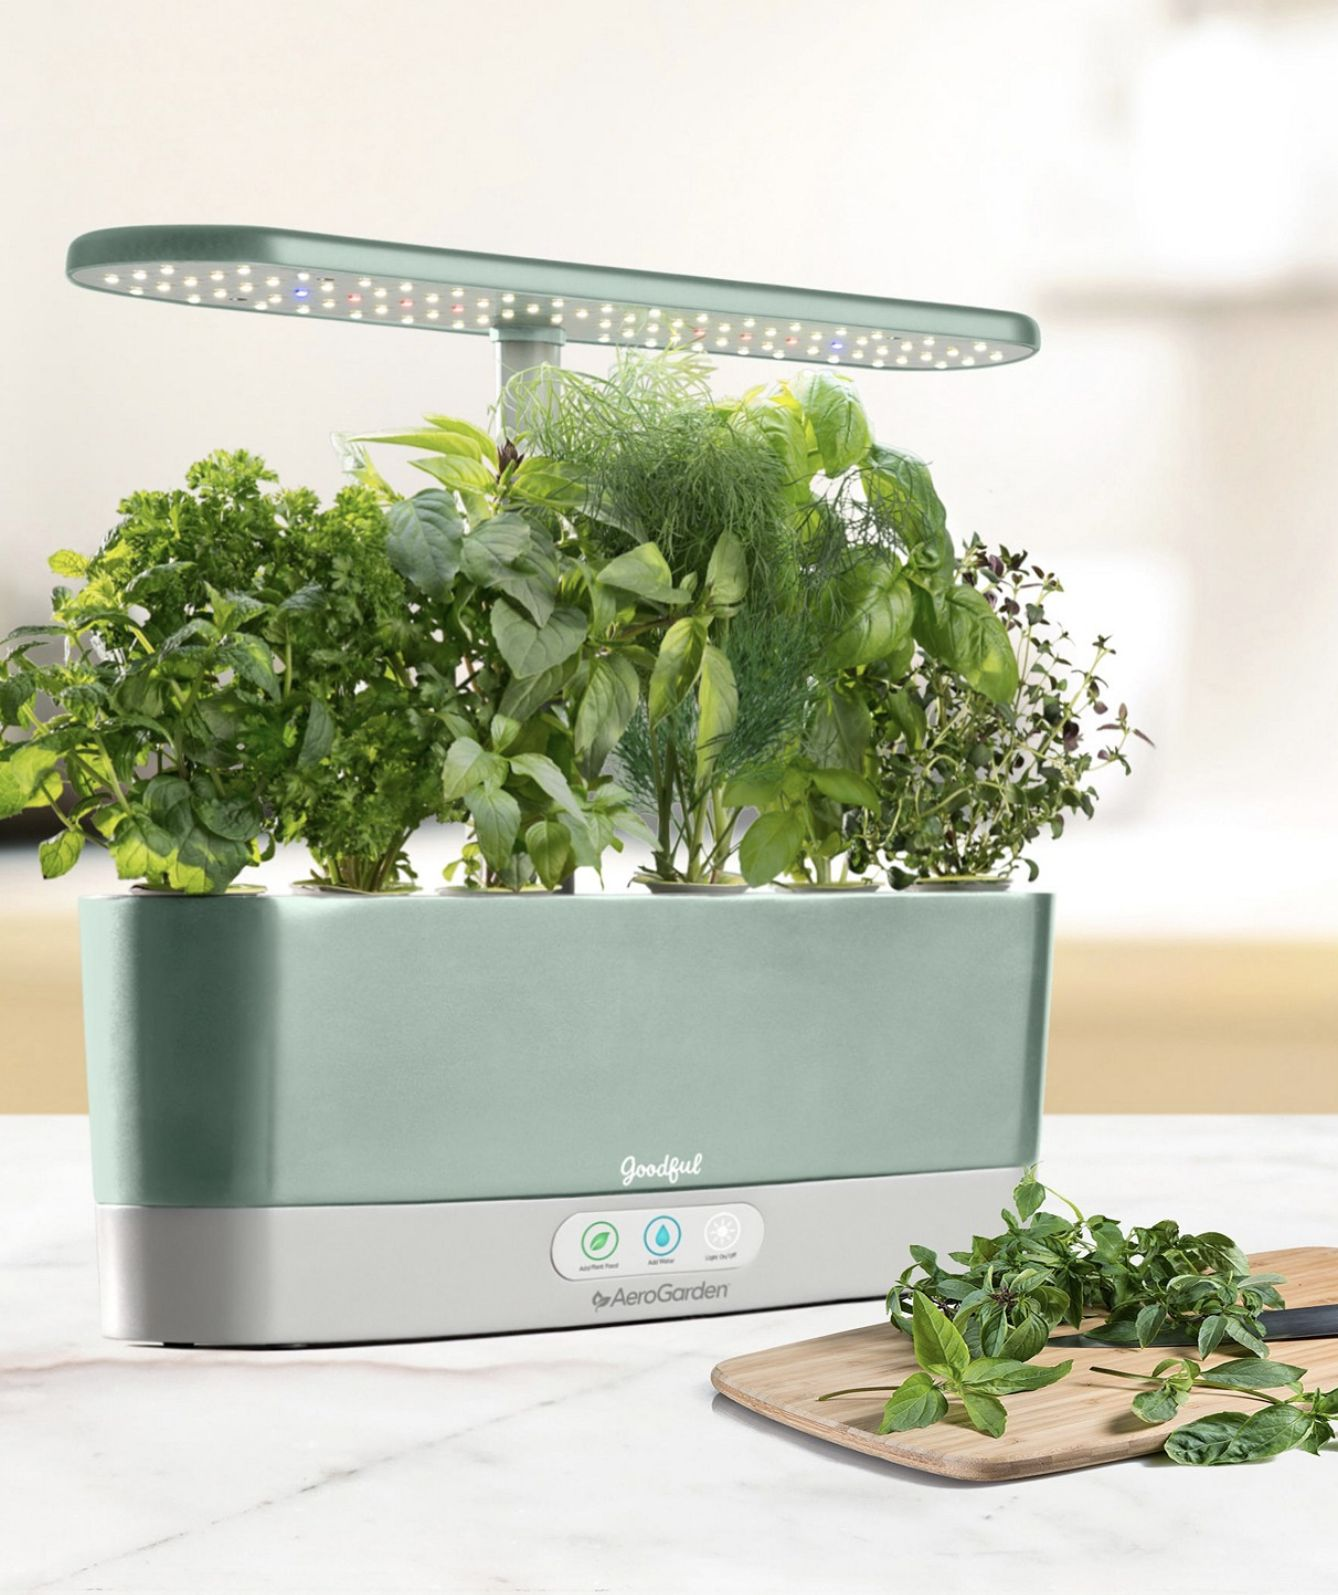 This sleek countertop garden and seed kit set is 3 percent off